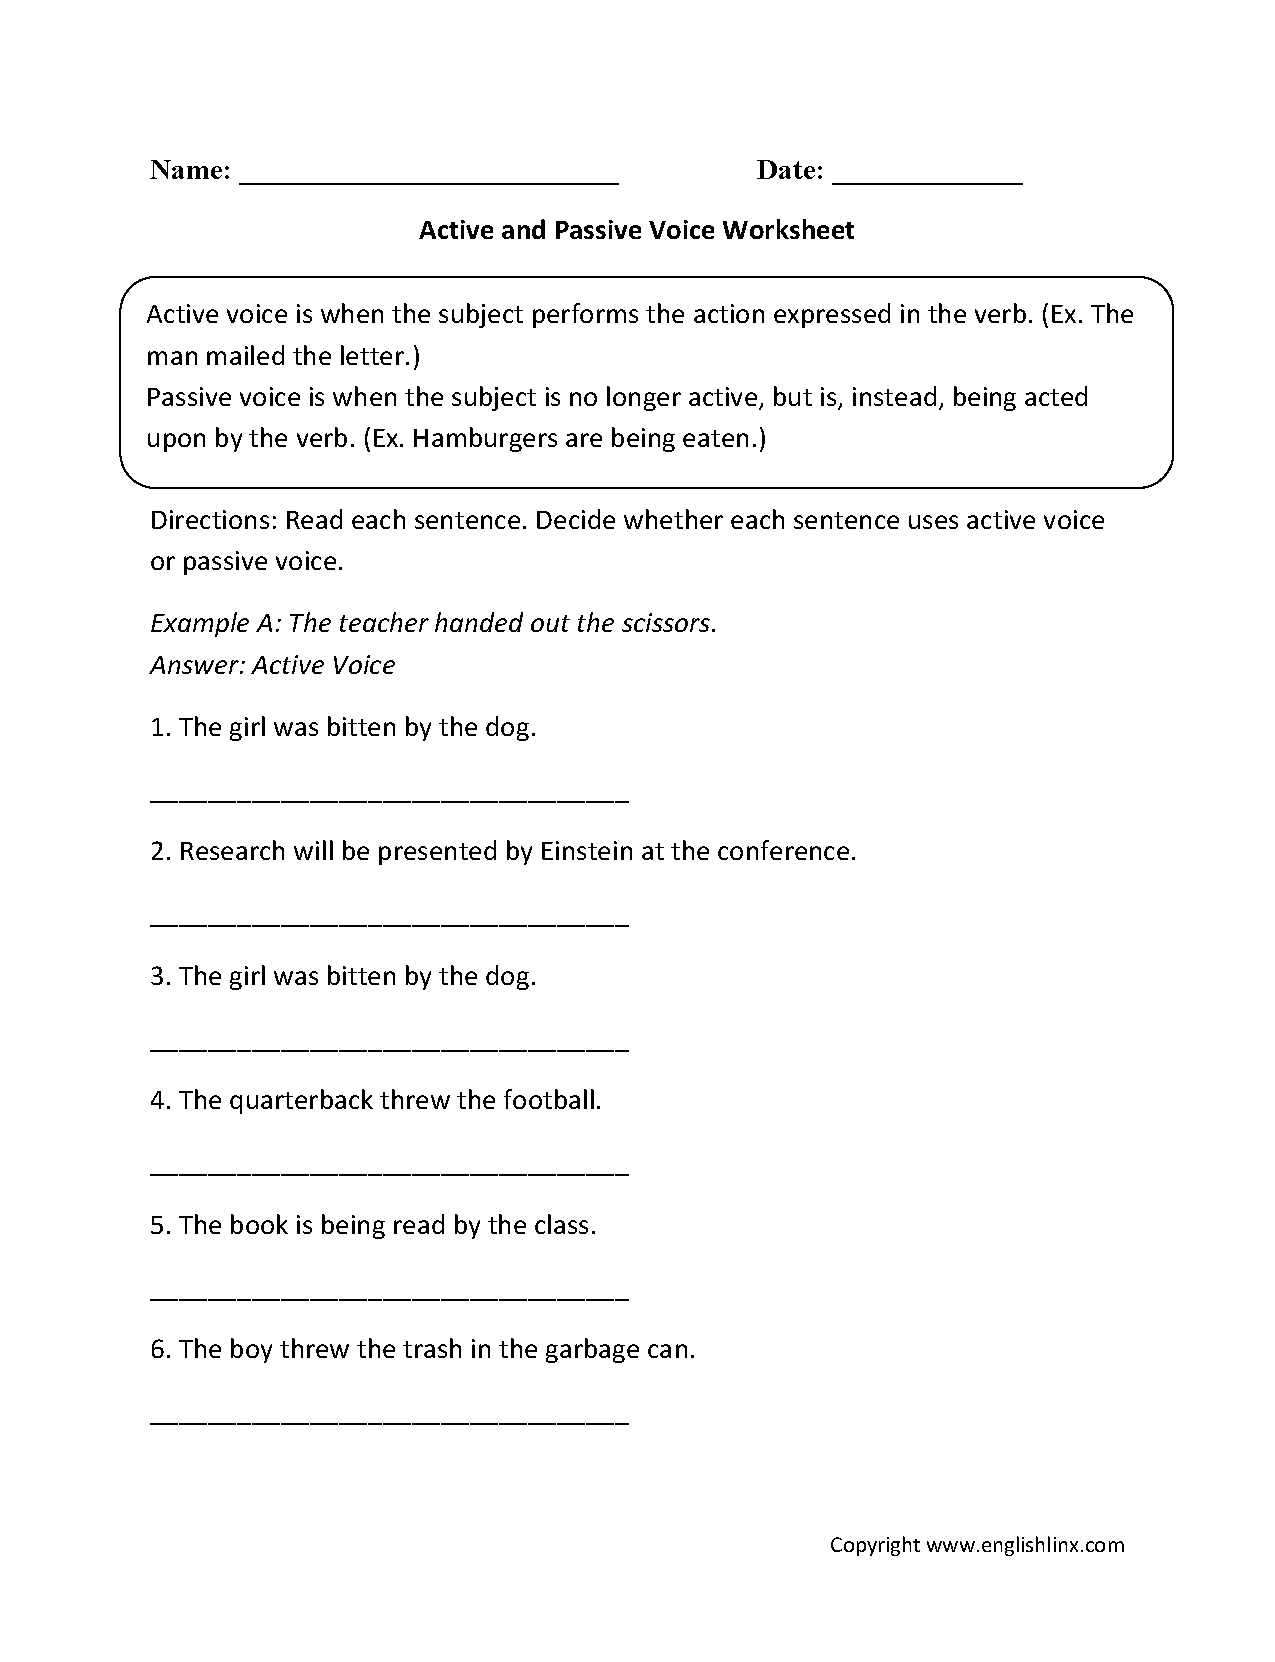 Worksheet Active And Passive Voice Worksheet englishlinx com active and passive voice worksheets worksheet